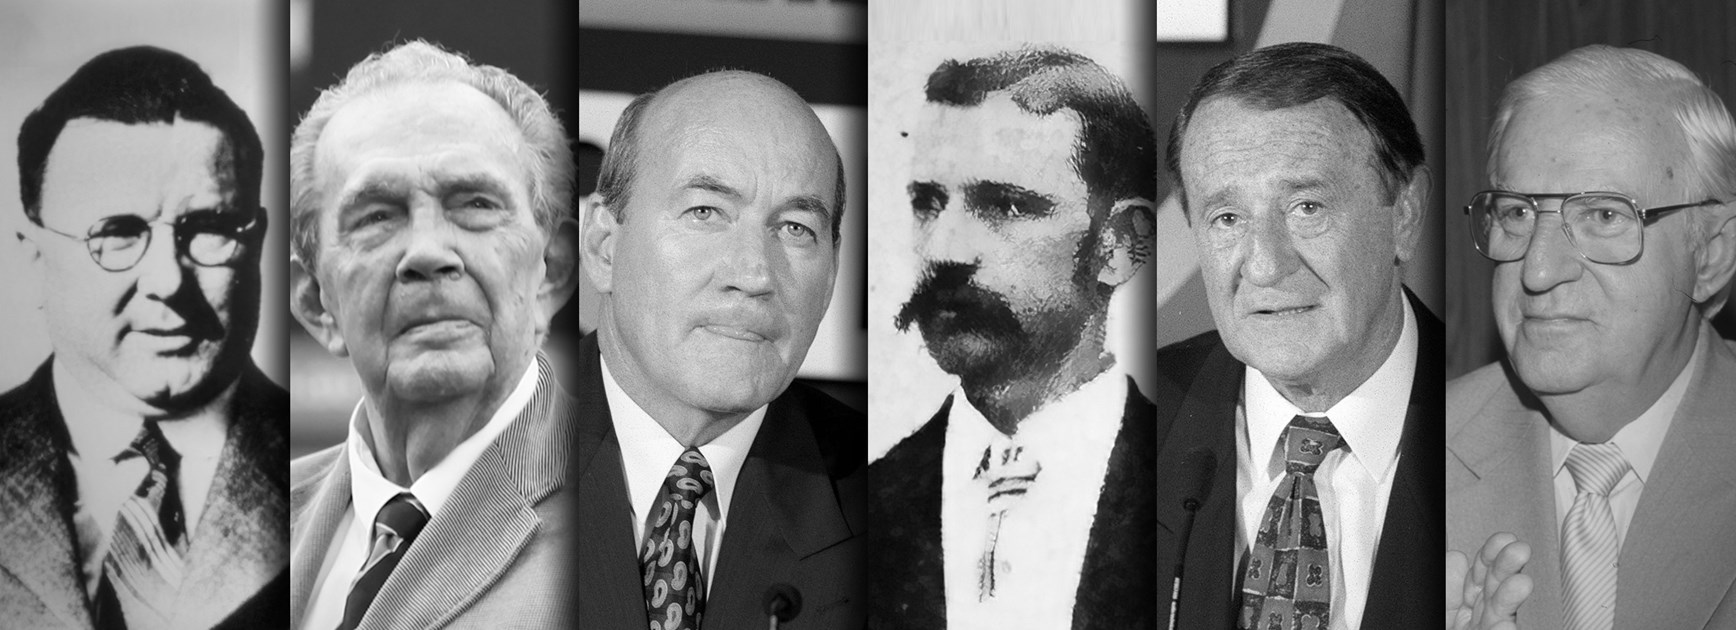 Legendary administrators short-listed for Hall of Fame